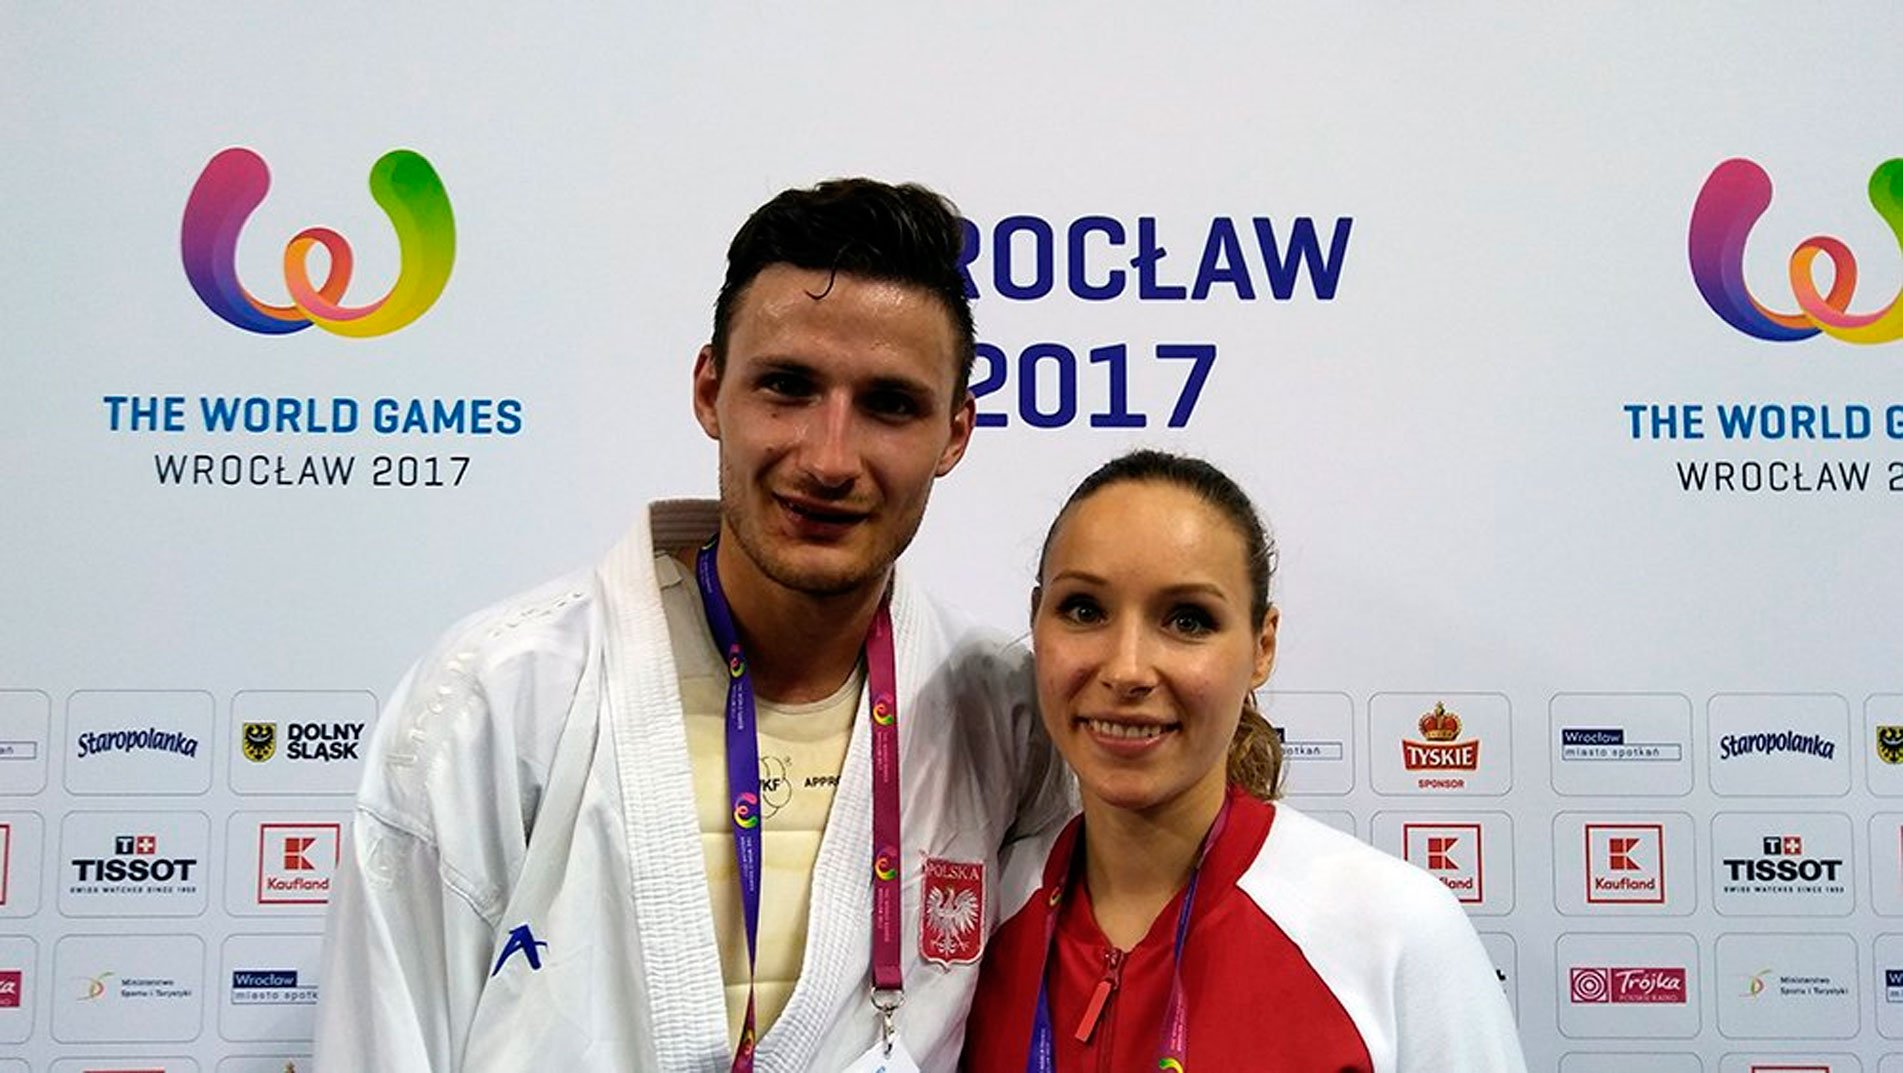 Twins Kamil and Kamila Warda enjoying historic edition of The World Games